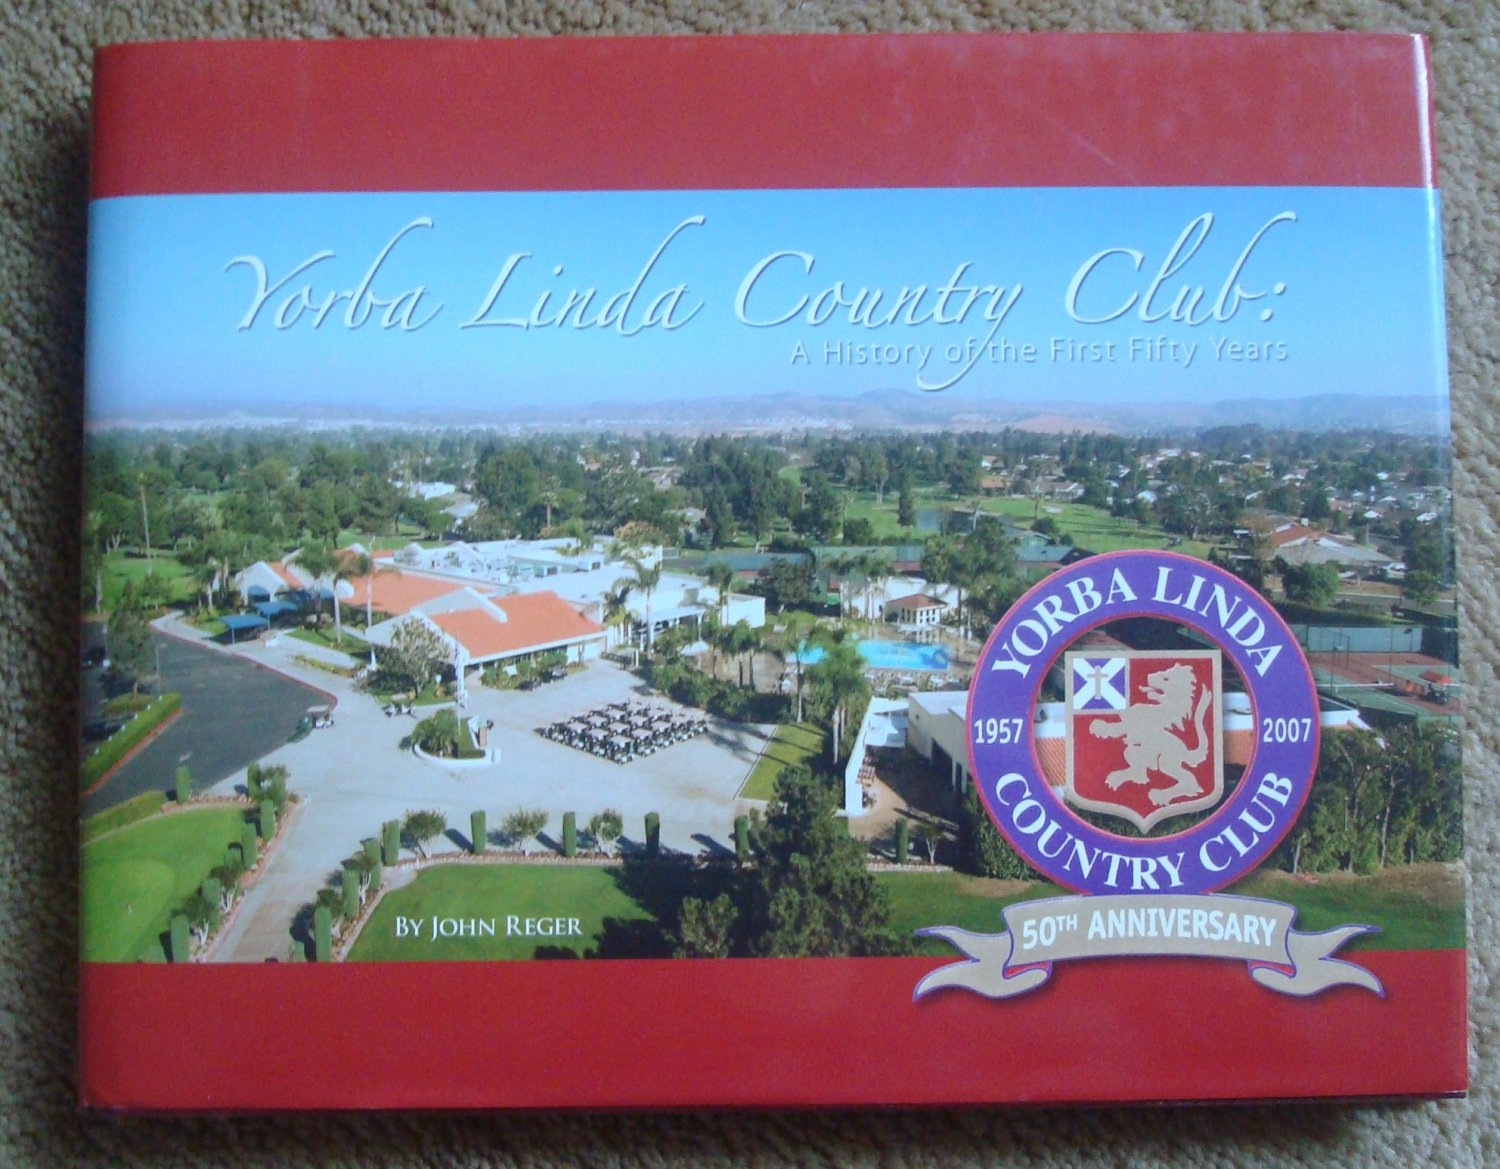 Yorba Linda Country Club: A History of the First Fifty Years